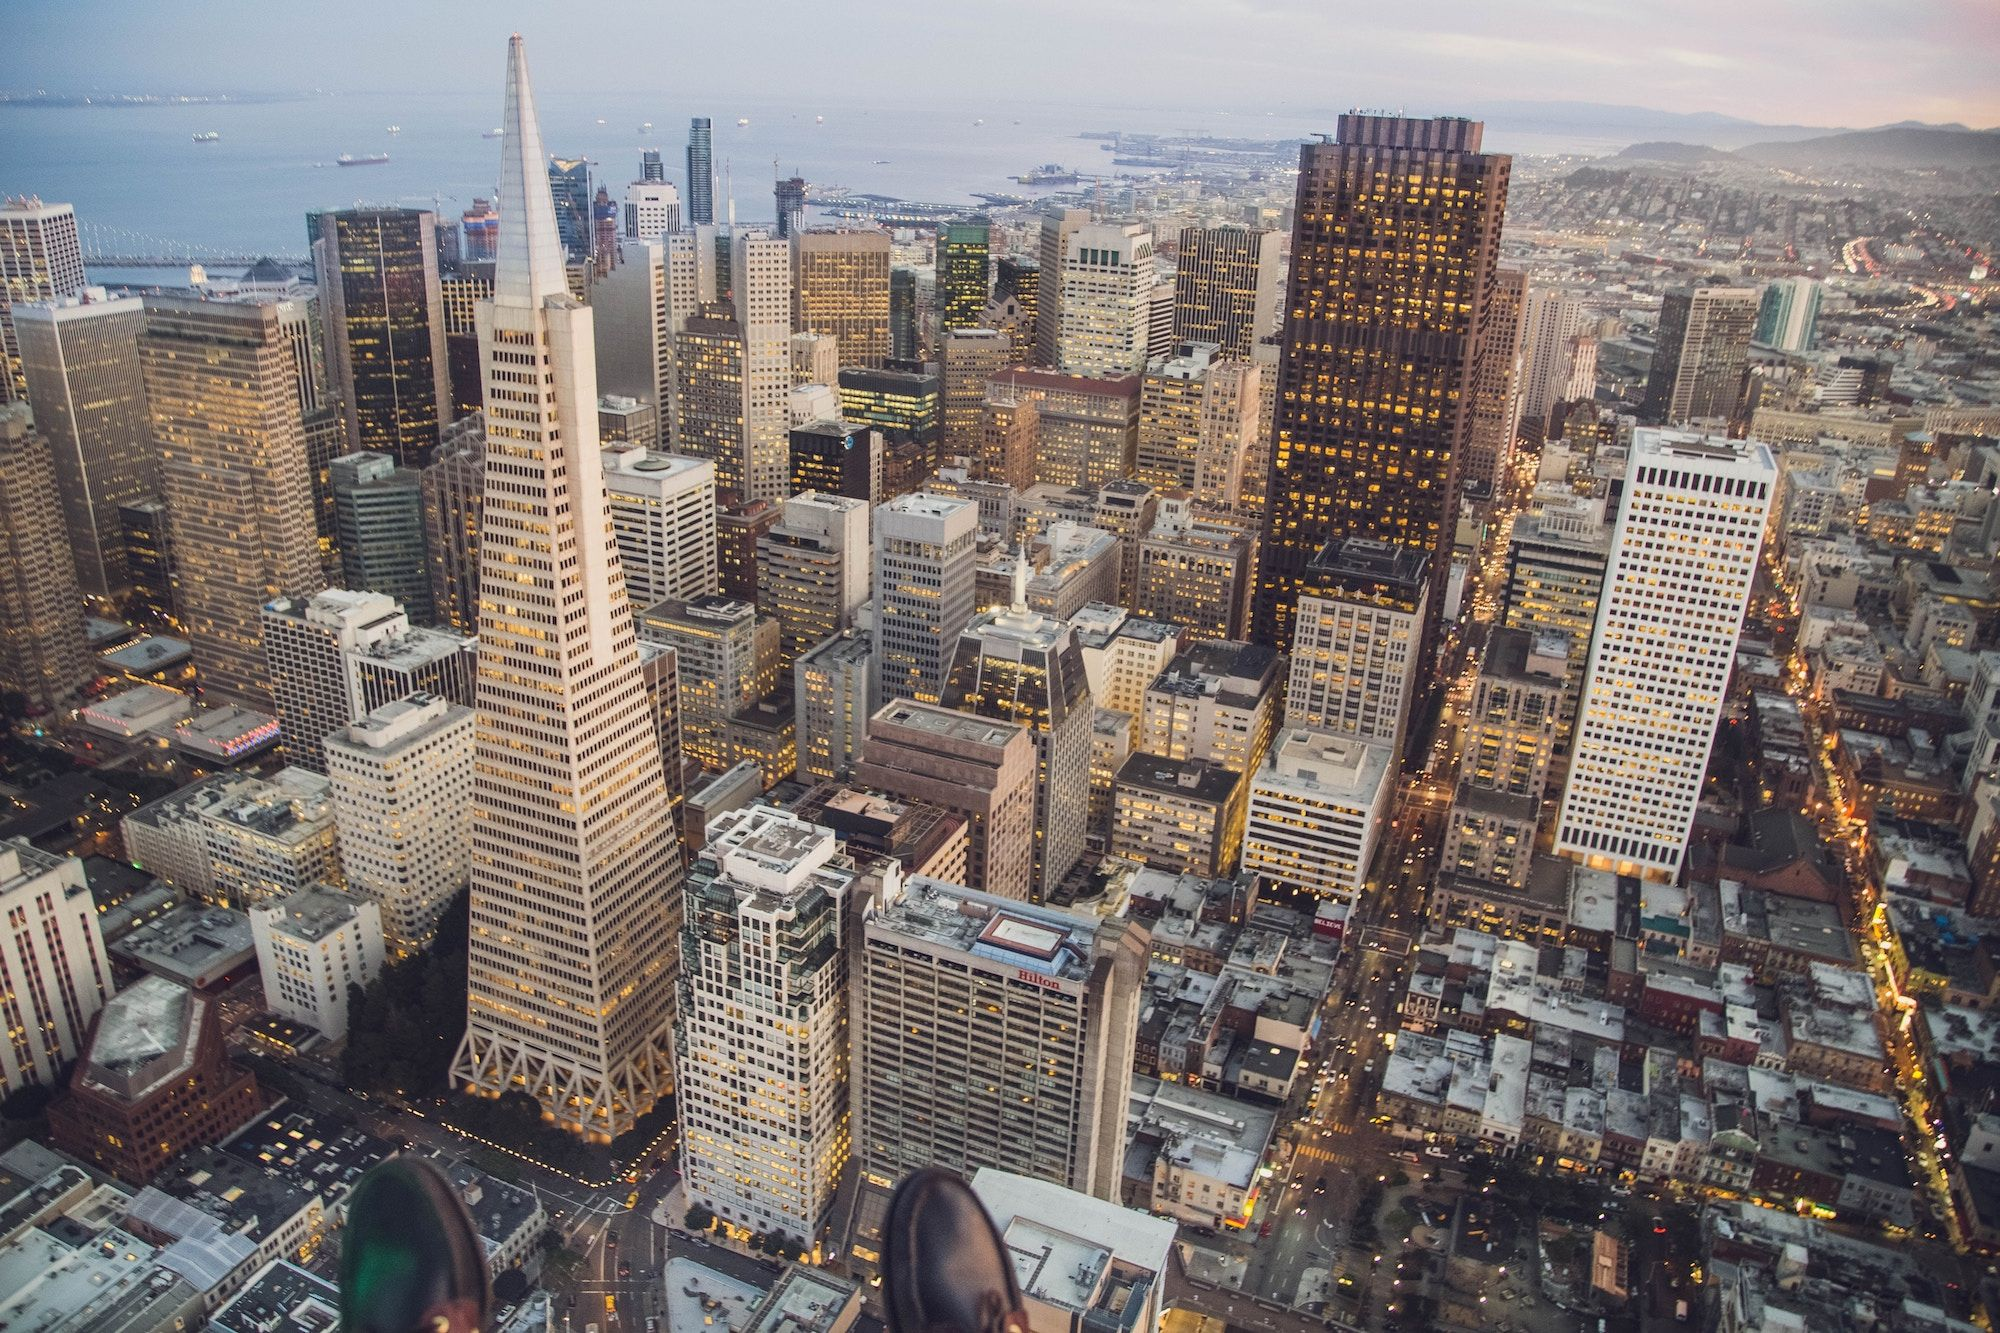 Tech giants will have to play by the rules – at least in San Francisco